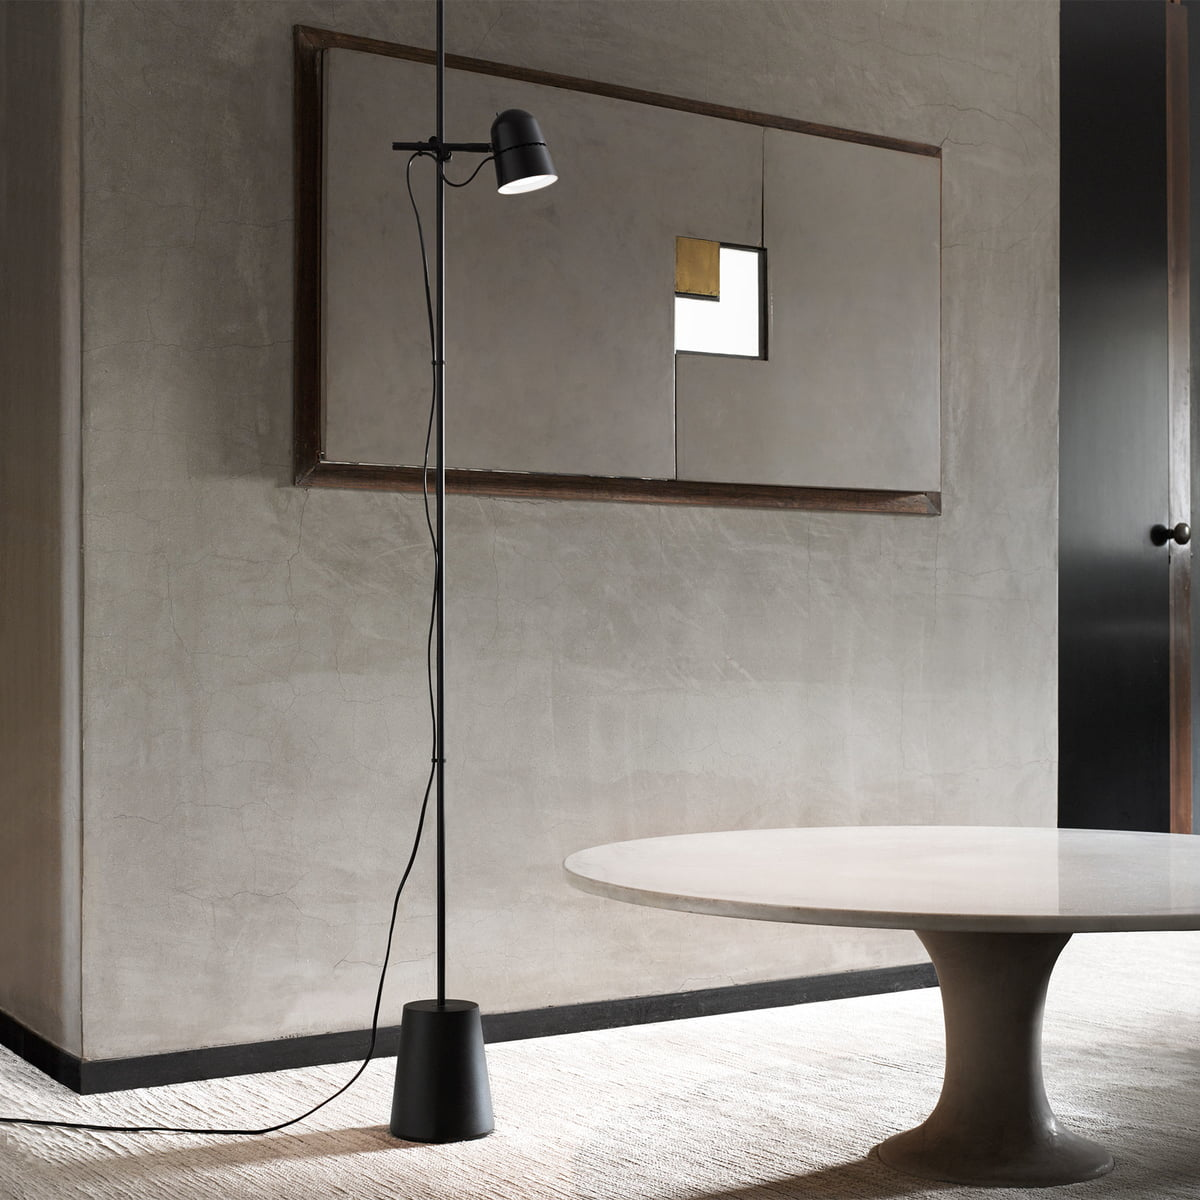 Floor Lamp by Luceplan:Counterbalance Floor Lamp by Luceplan,Lighting